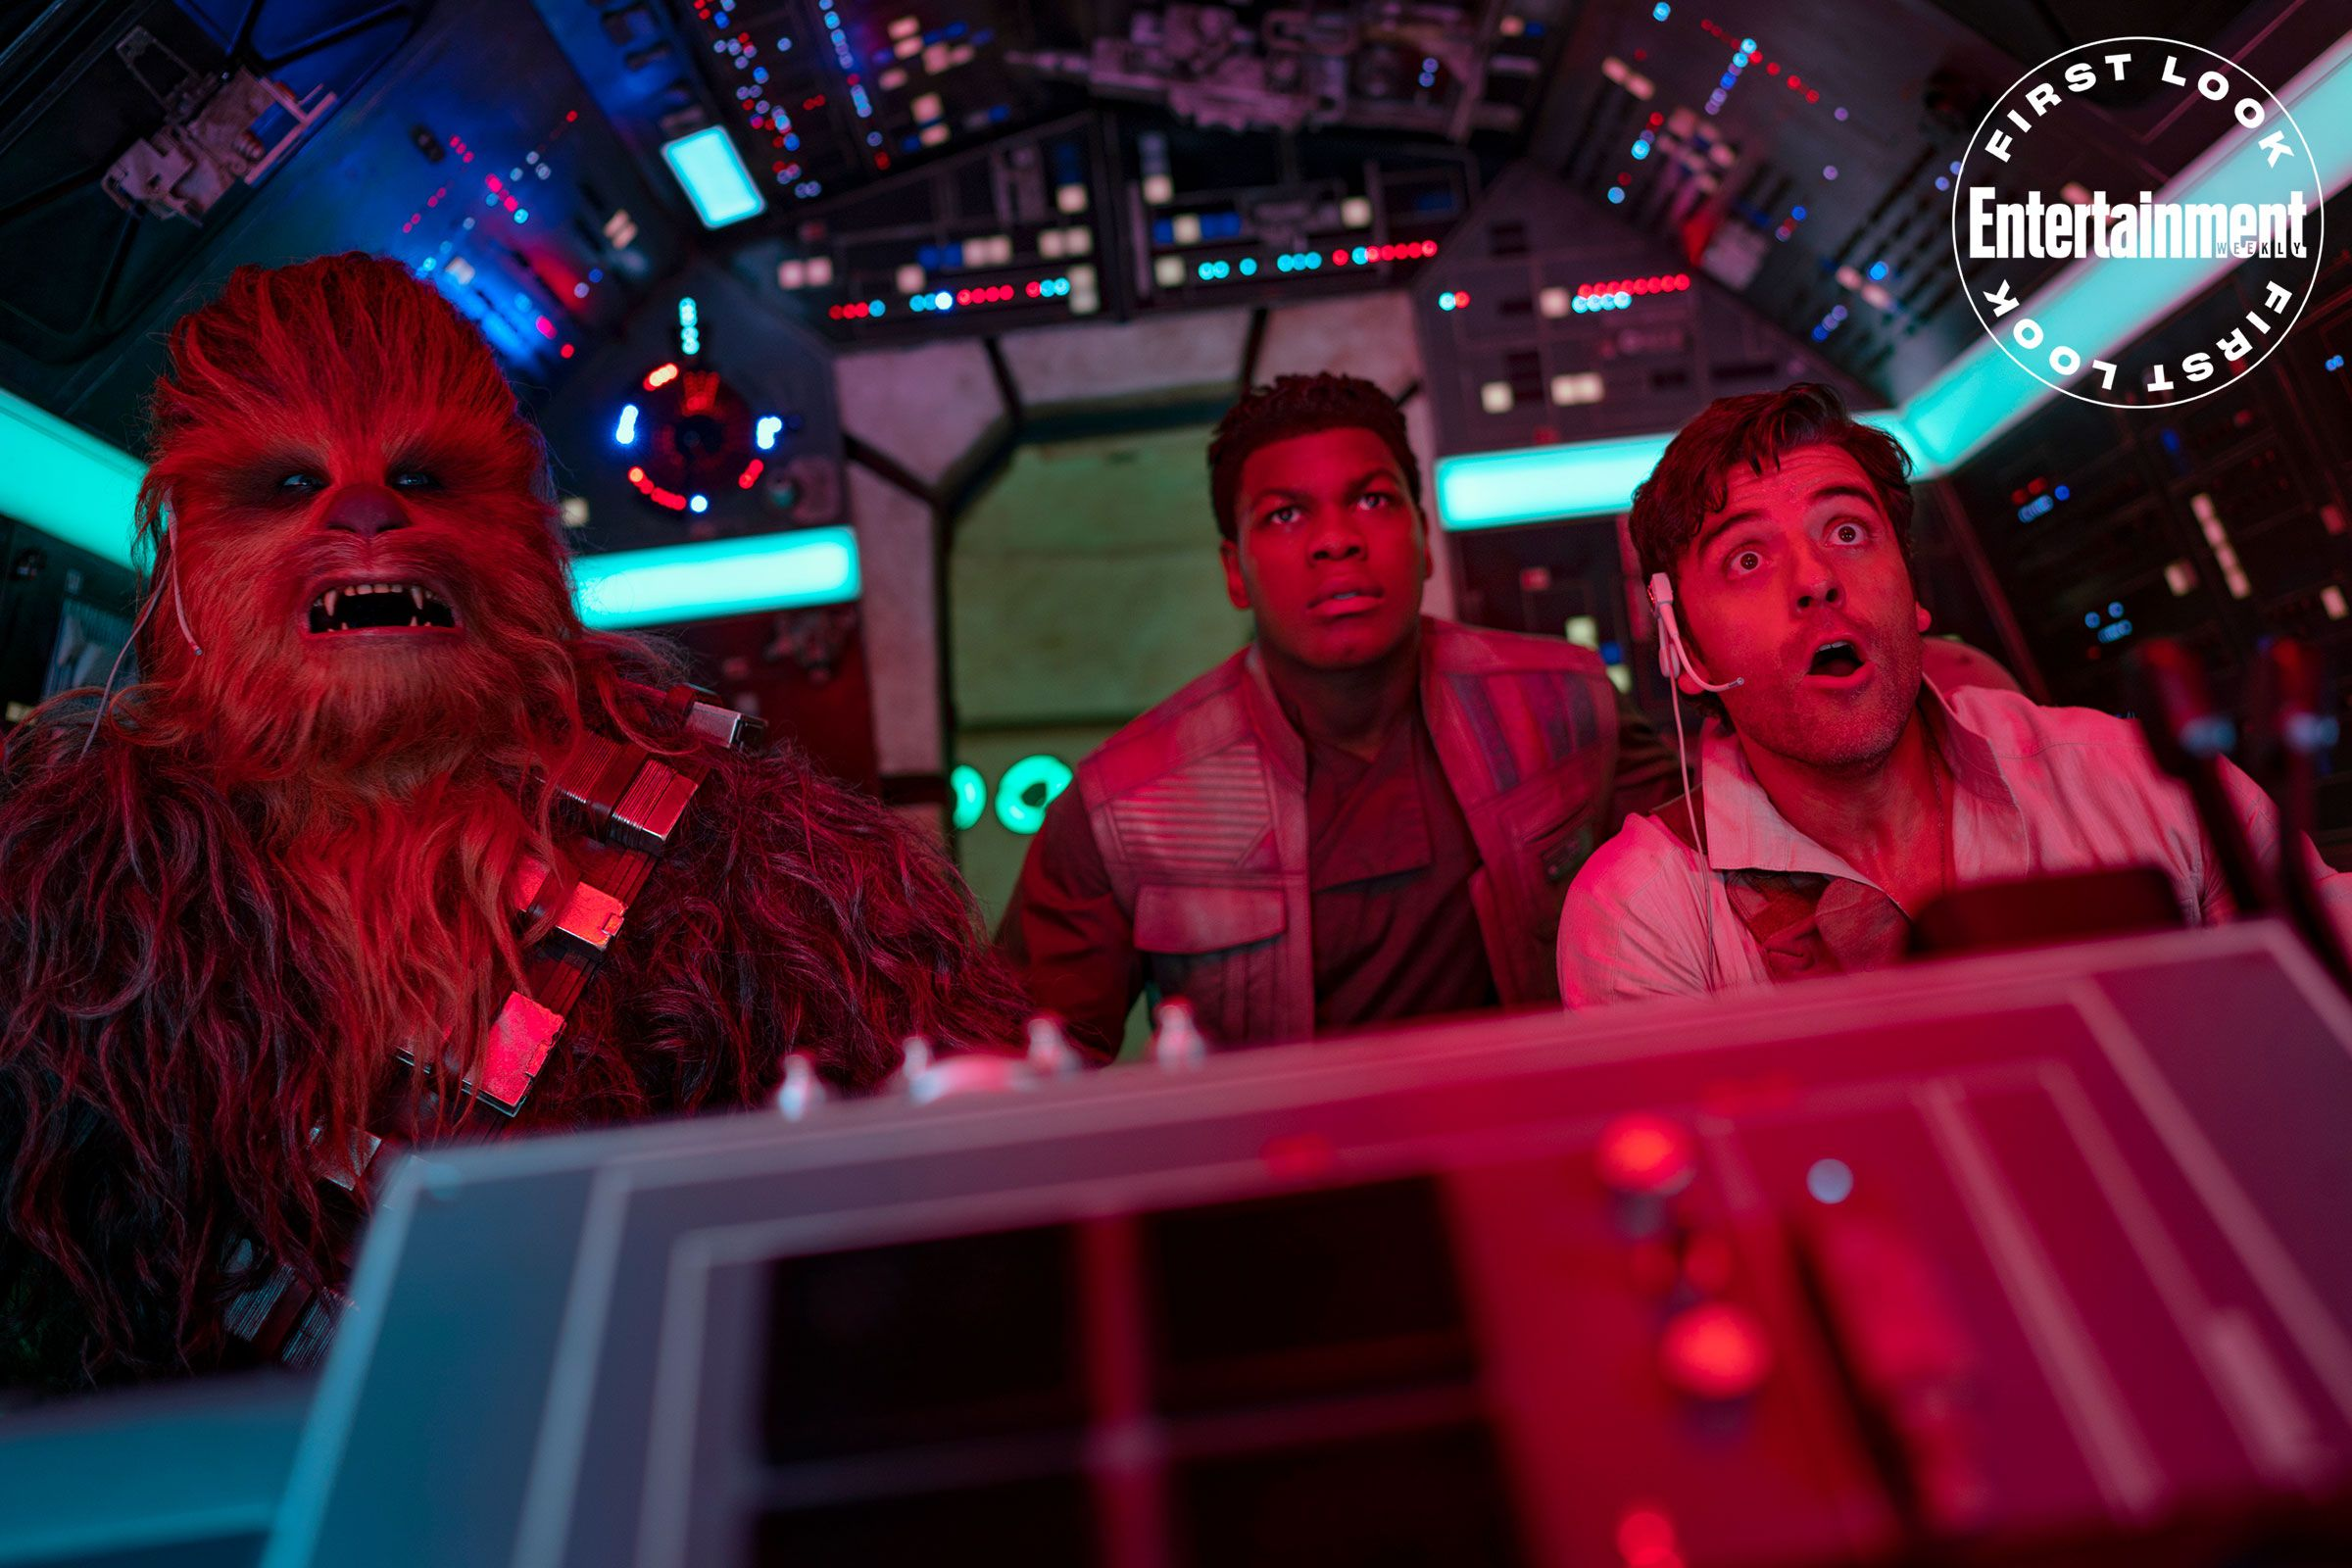 Star Wars Rise Of Skywalker Image Puts Poe Dameron In The Pilot Seat Collider